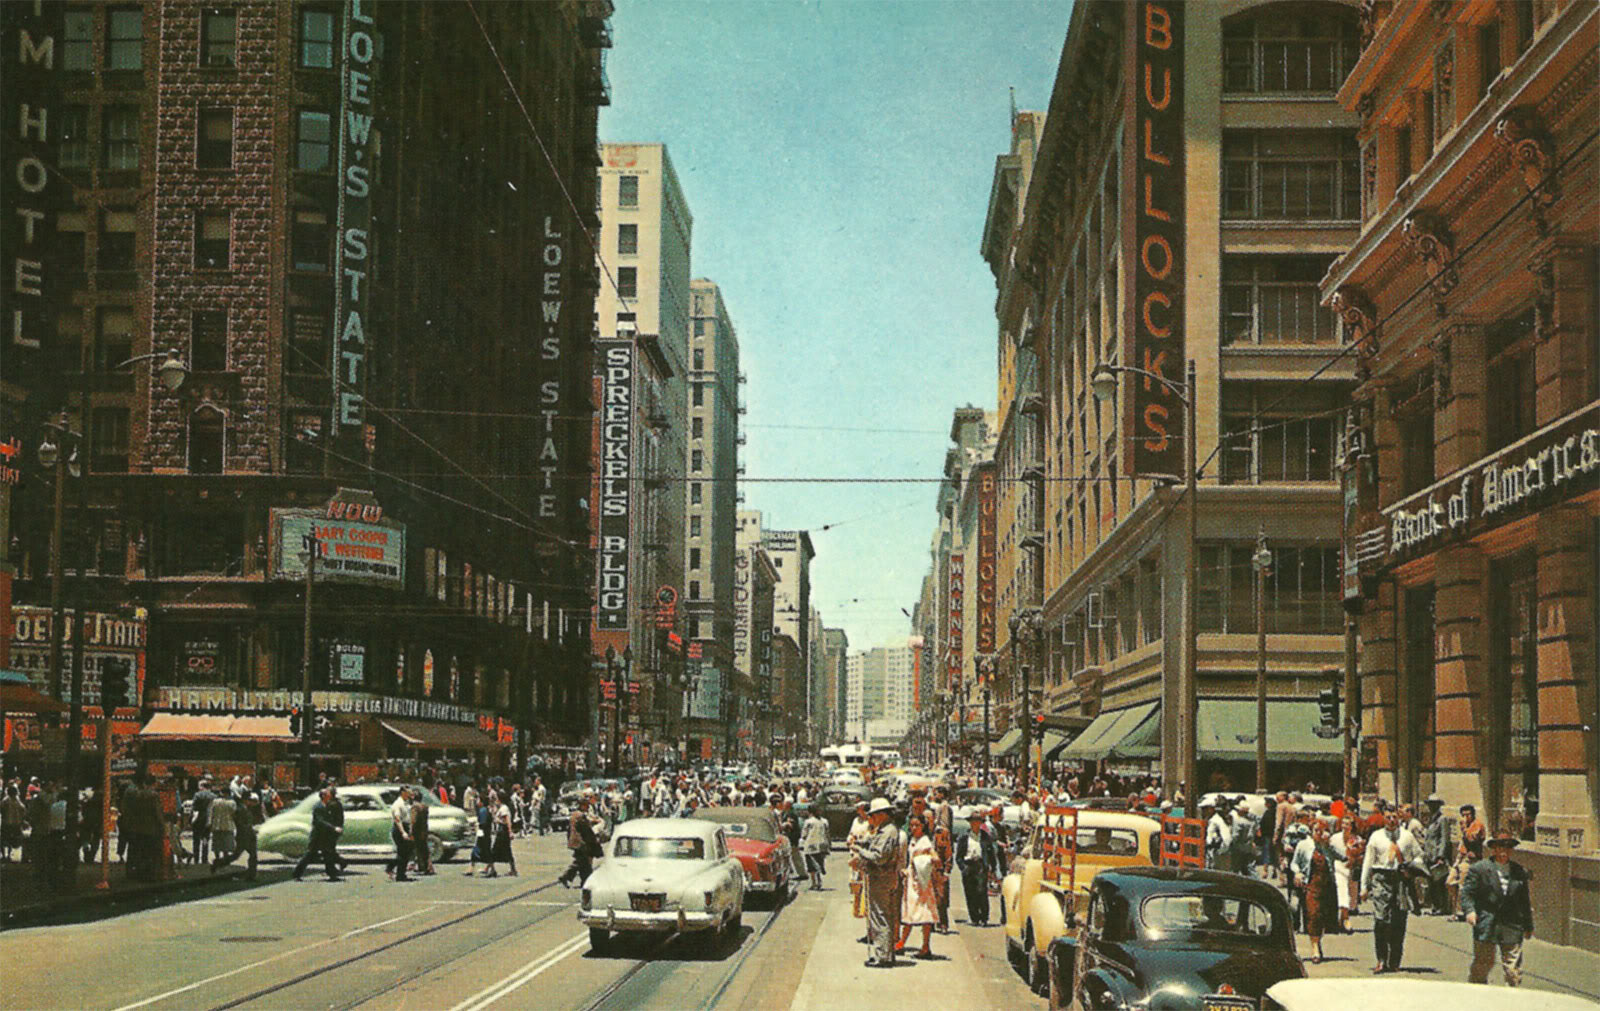 Seventh and Broadway, 1950s